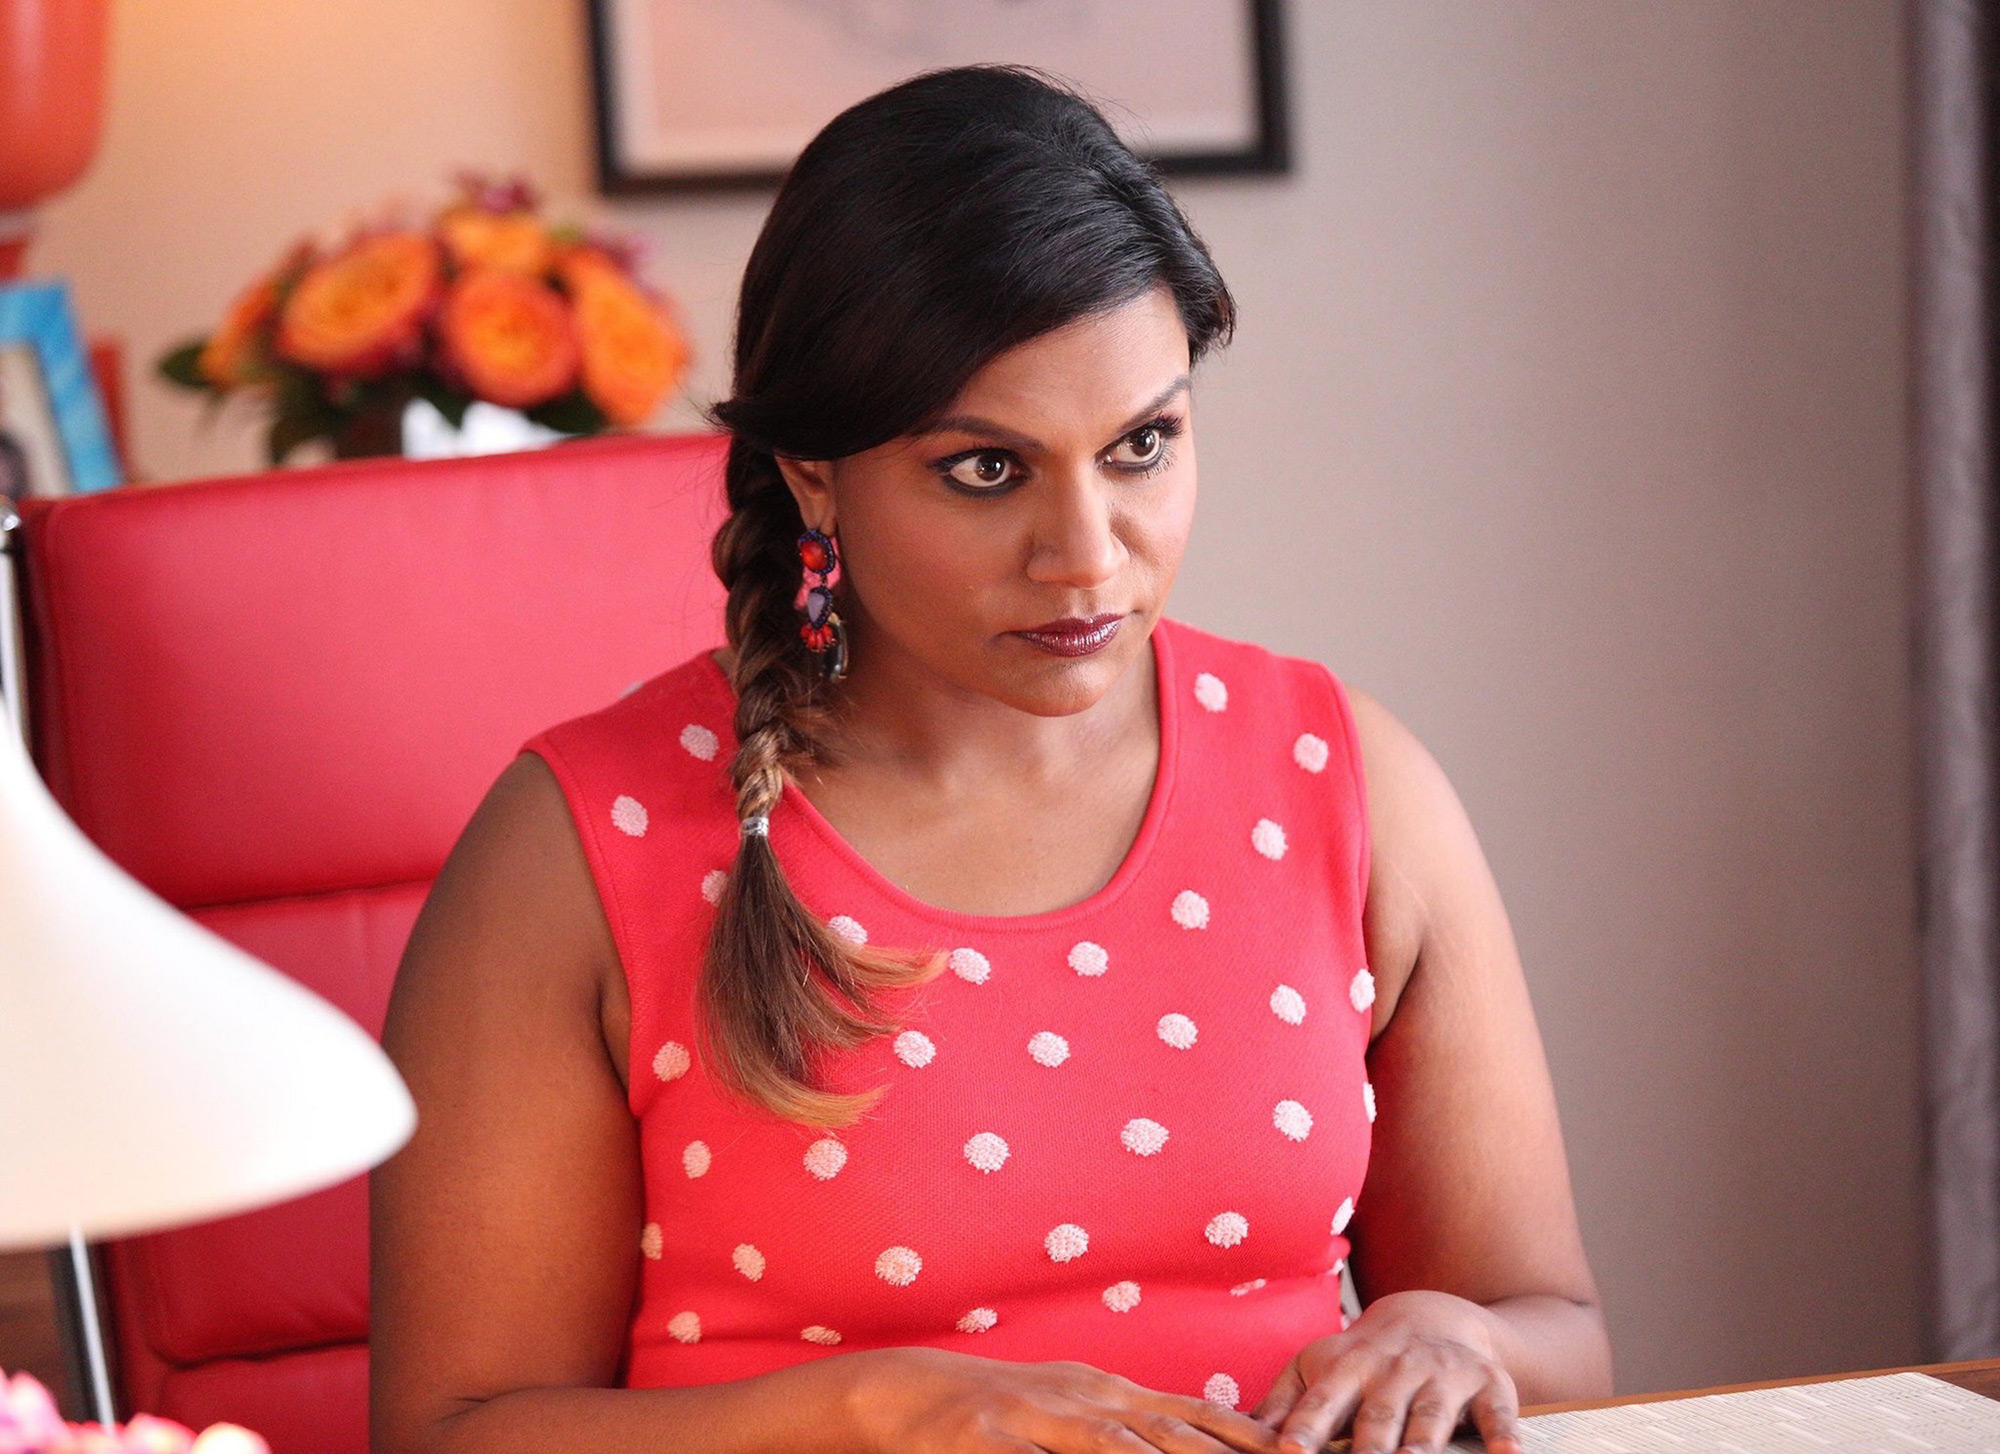 mindy-project-office